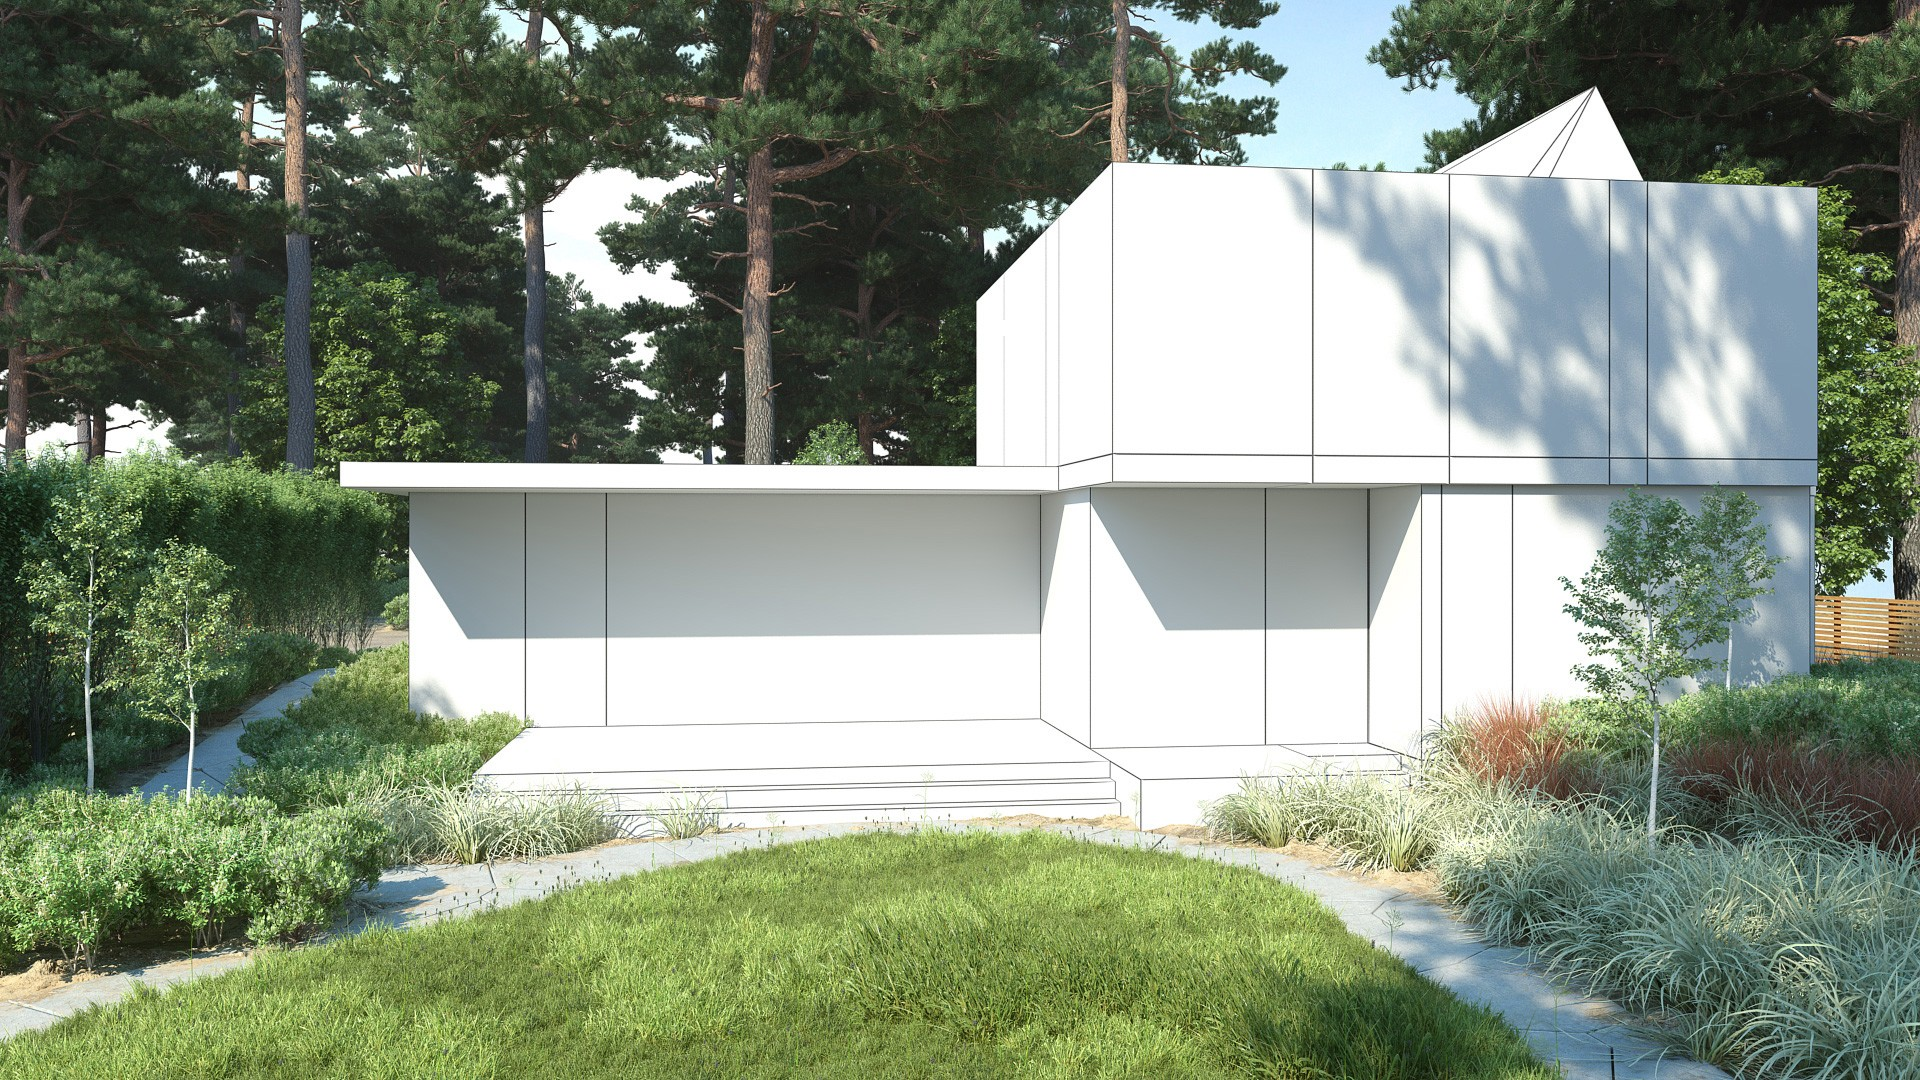 Scene 2 ae30 archexteriors max psd exterior evermotion - Vray exterior rendering settings pdf ...